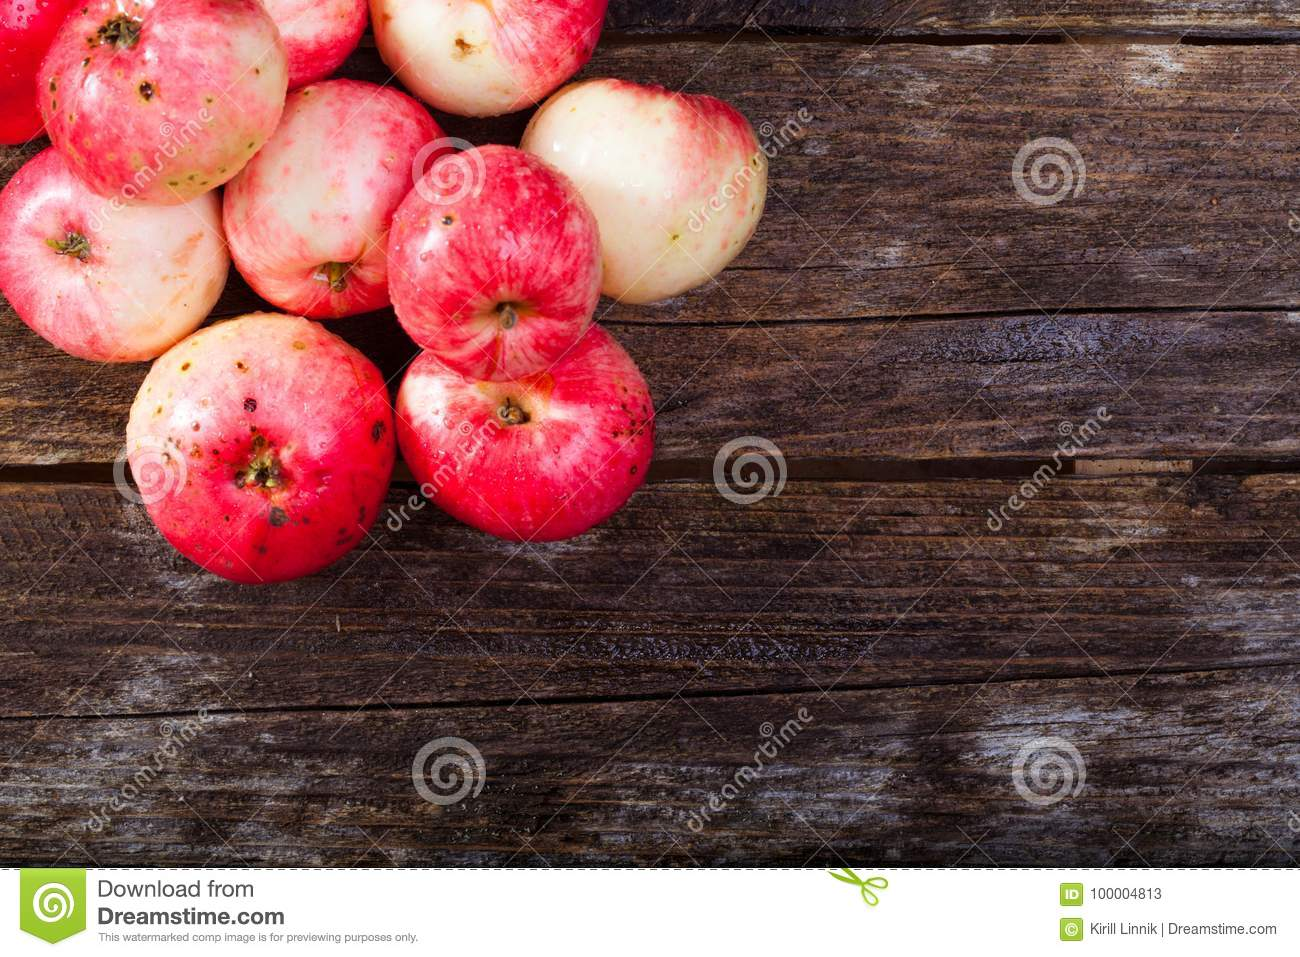 Download Red ripe apples stock image. Image of retro, freshness - 100004813